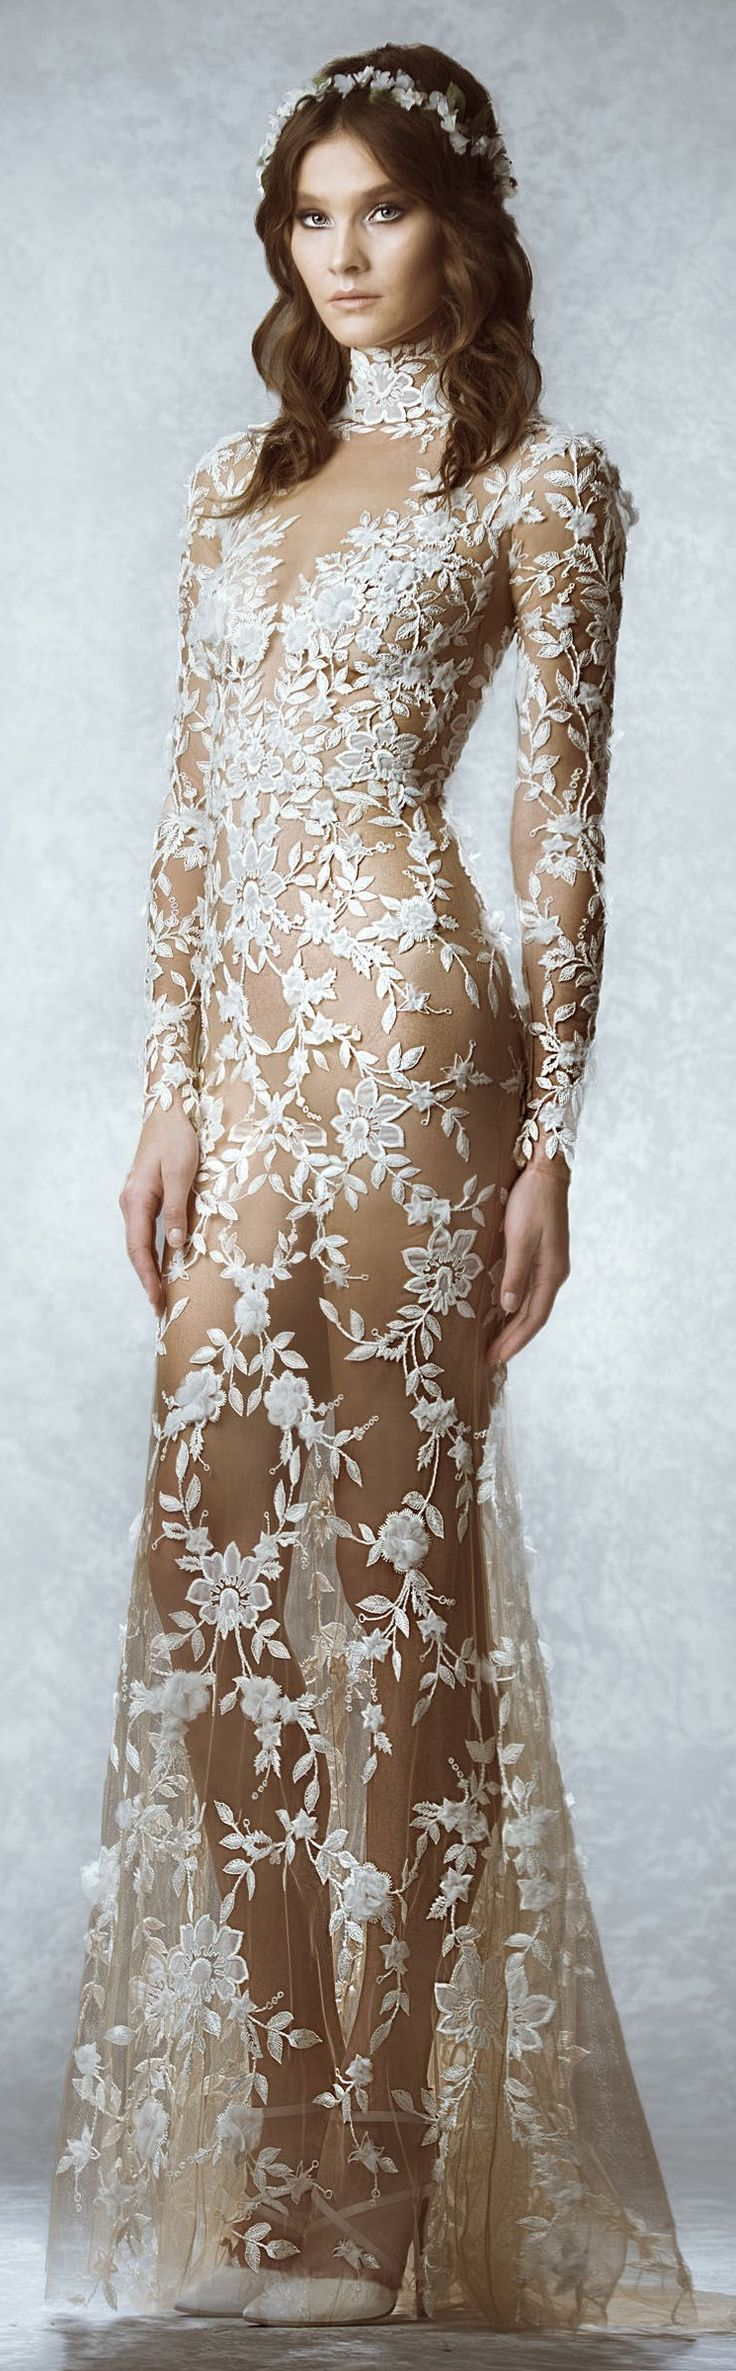 zuhair murad fall winter 2015 bridal kleider pinterest beautiful the bride and brides. Black Bedroom Furniture Sets. Home Design Ideas